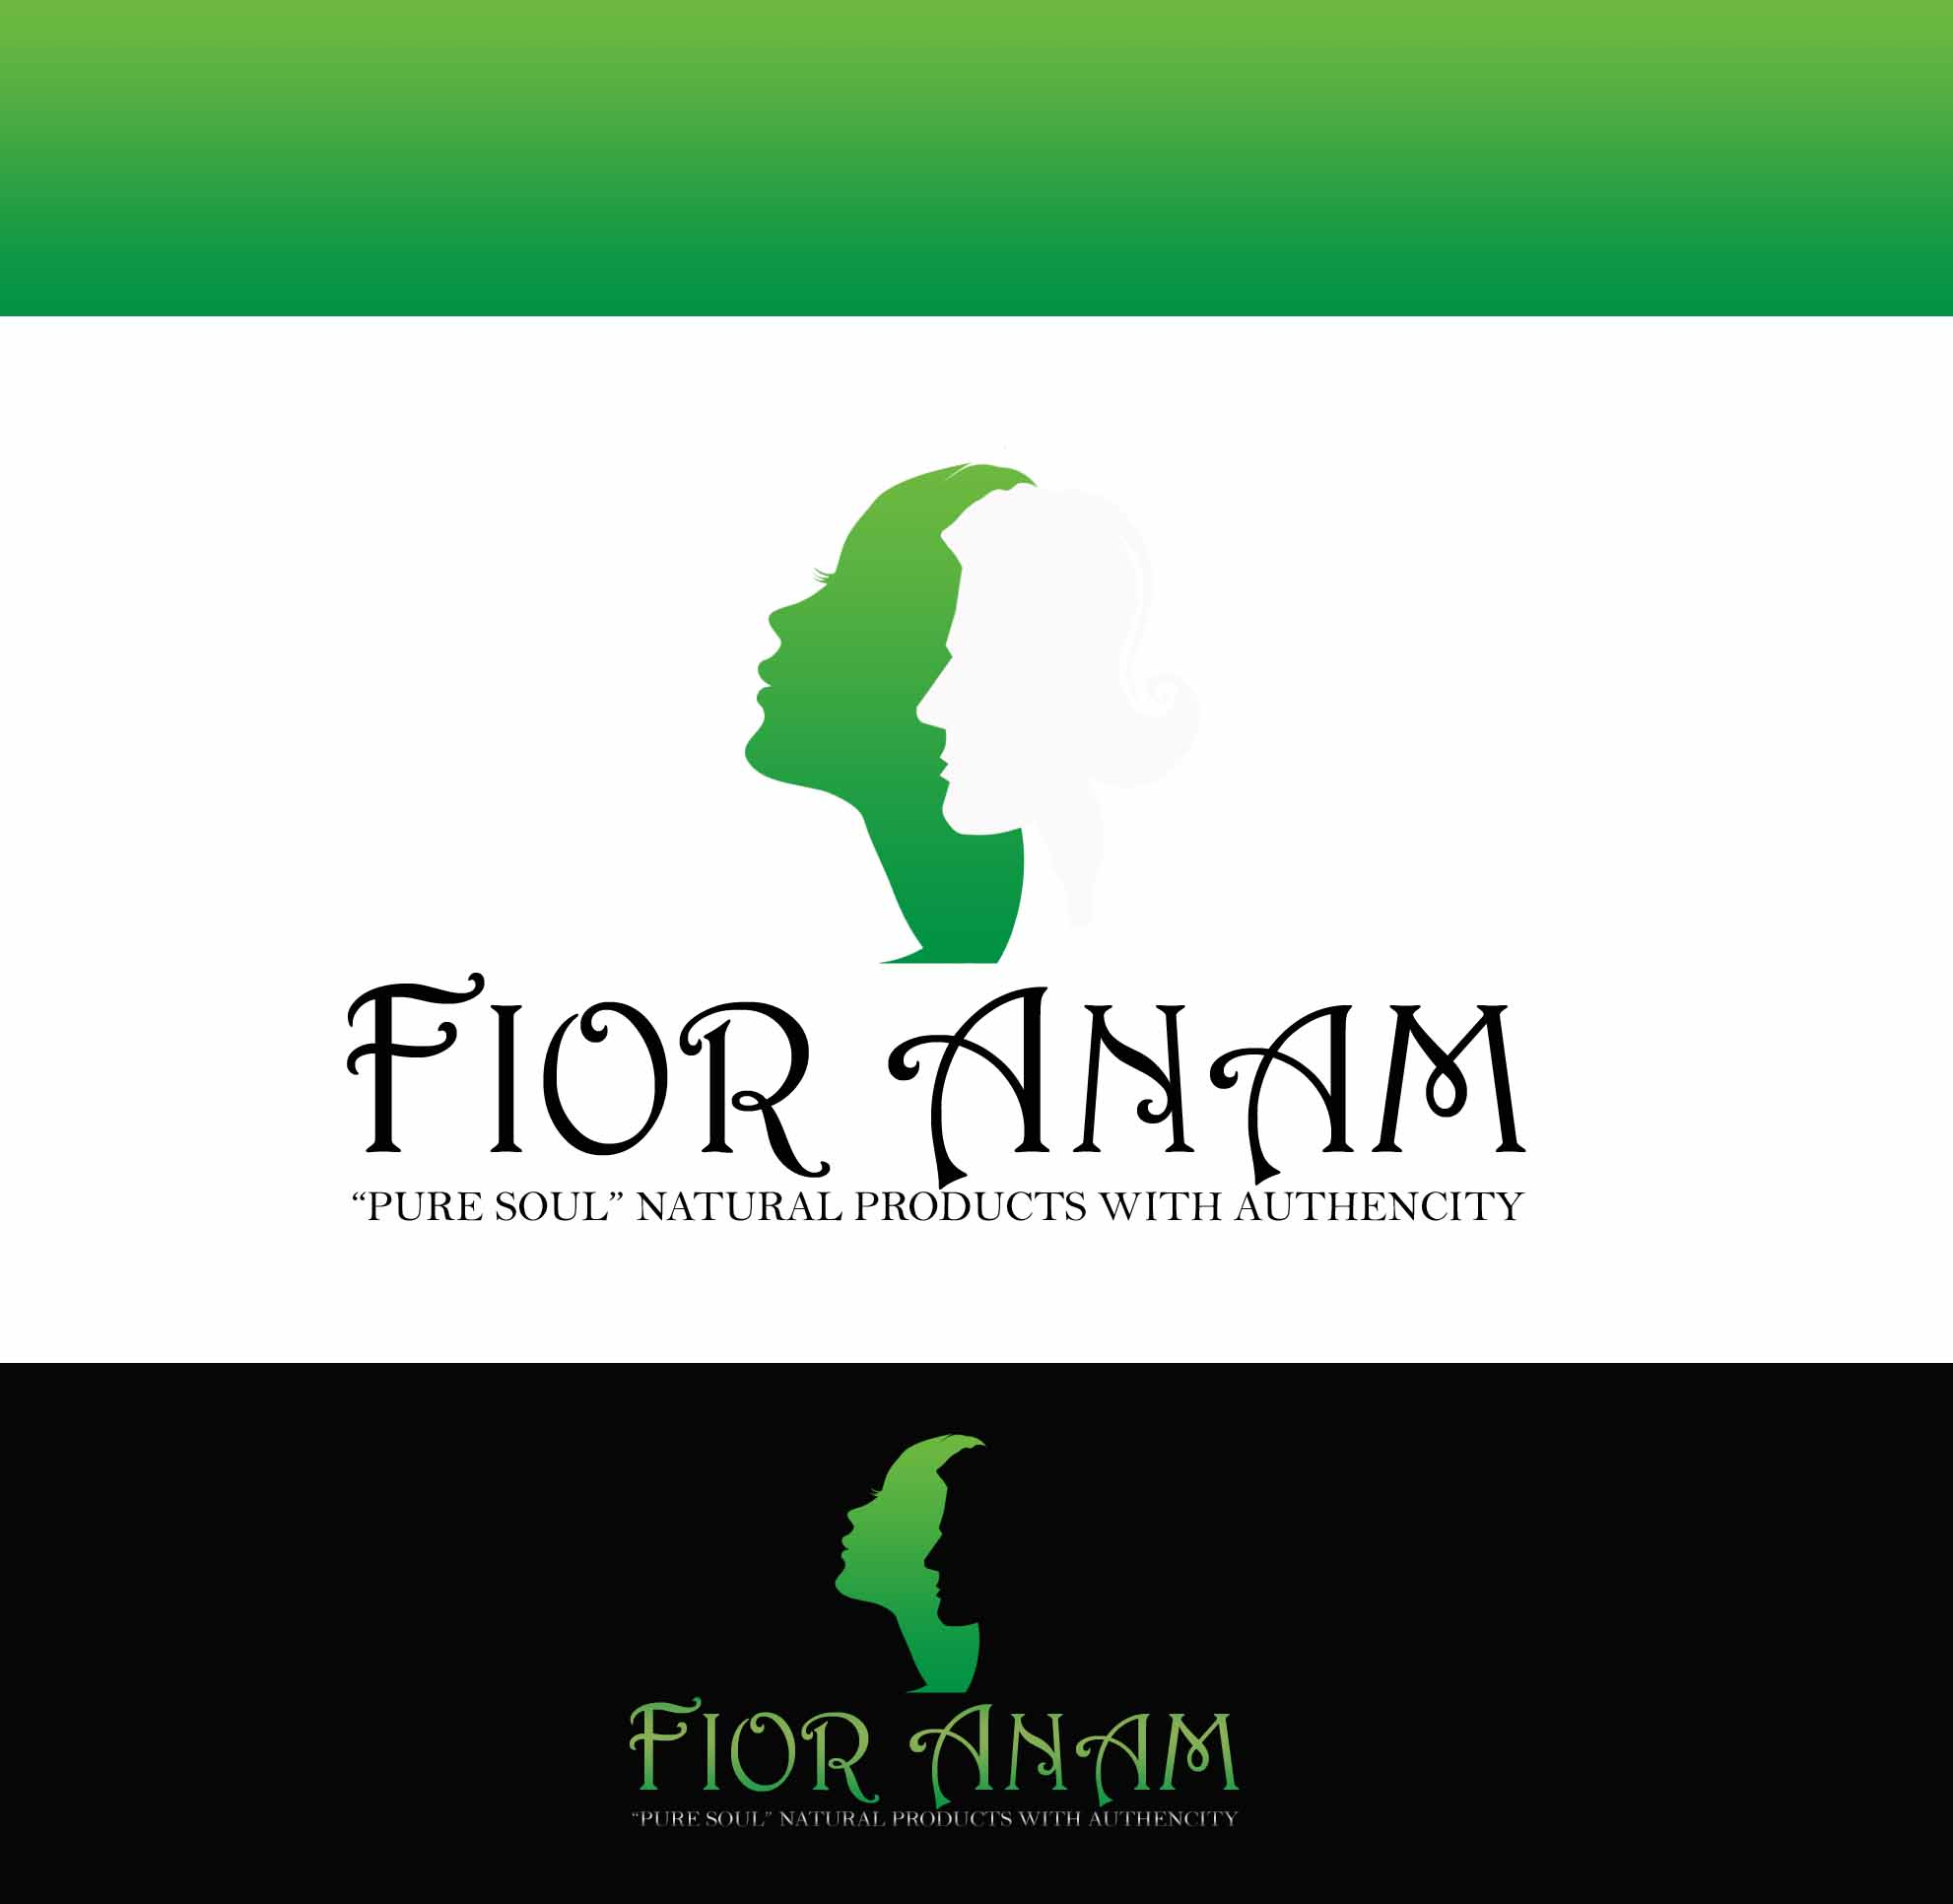 Logo Design by JSDESIGNGROUP - Entry No. 187 in the Logo Design Contest Creative Logo Design for Fior Anam.